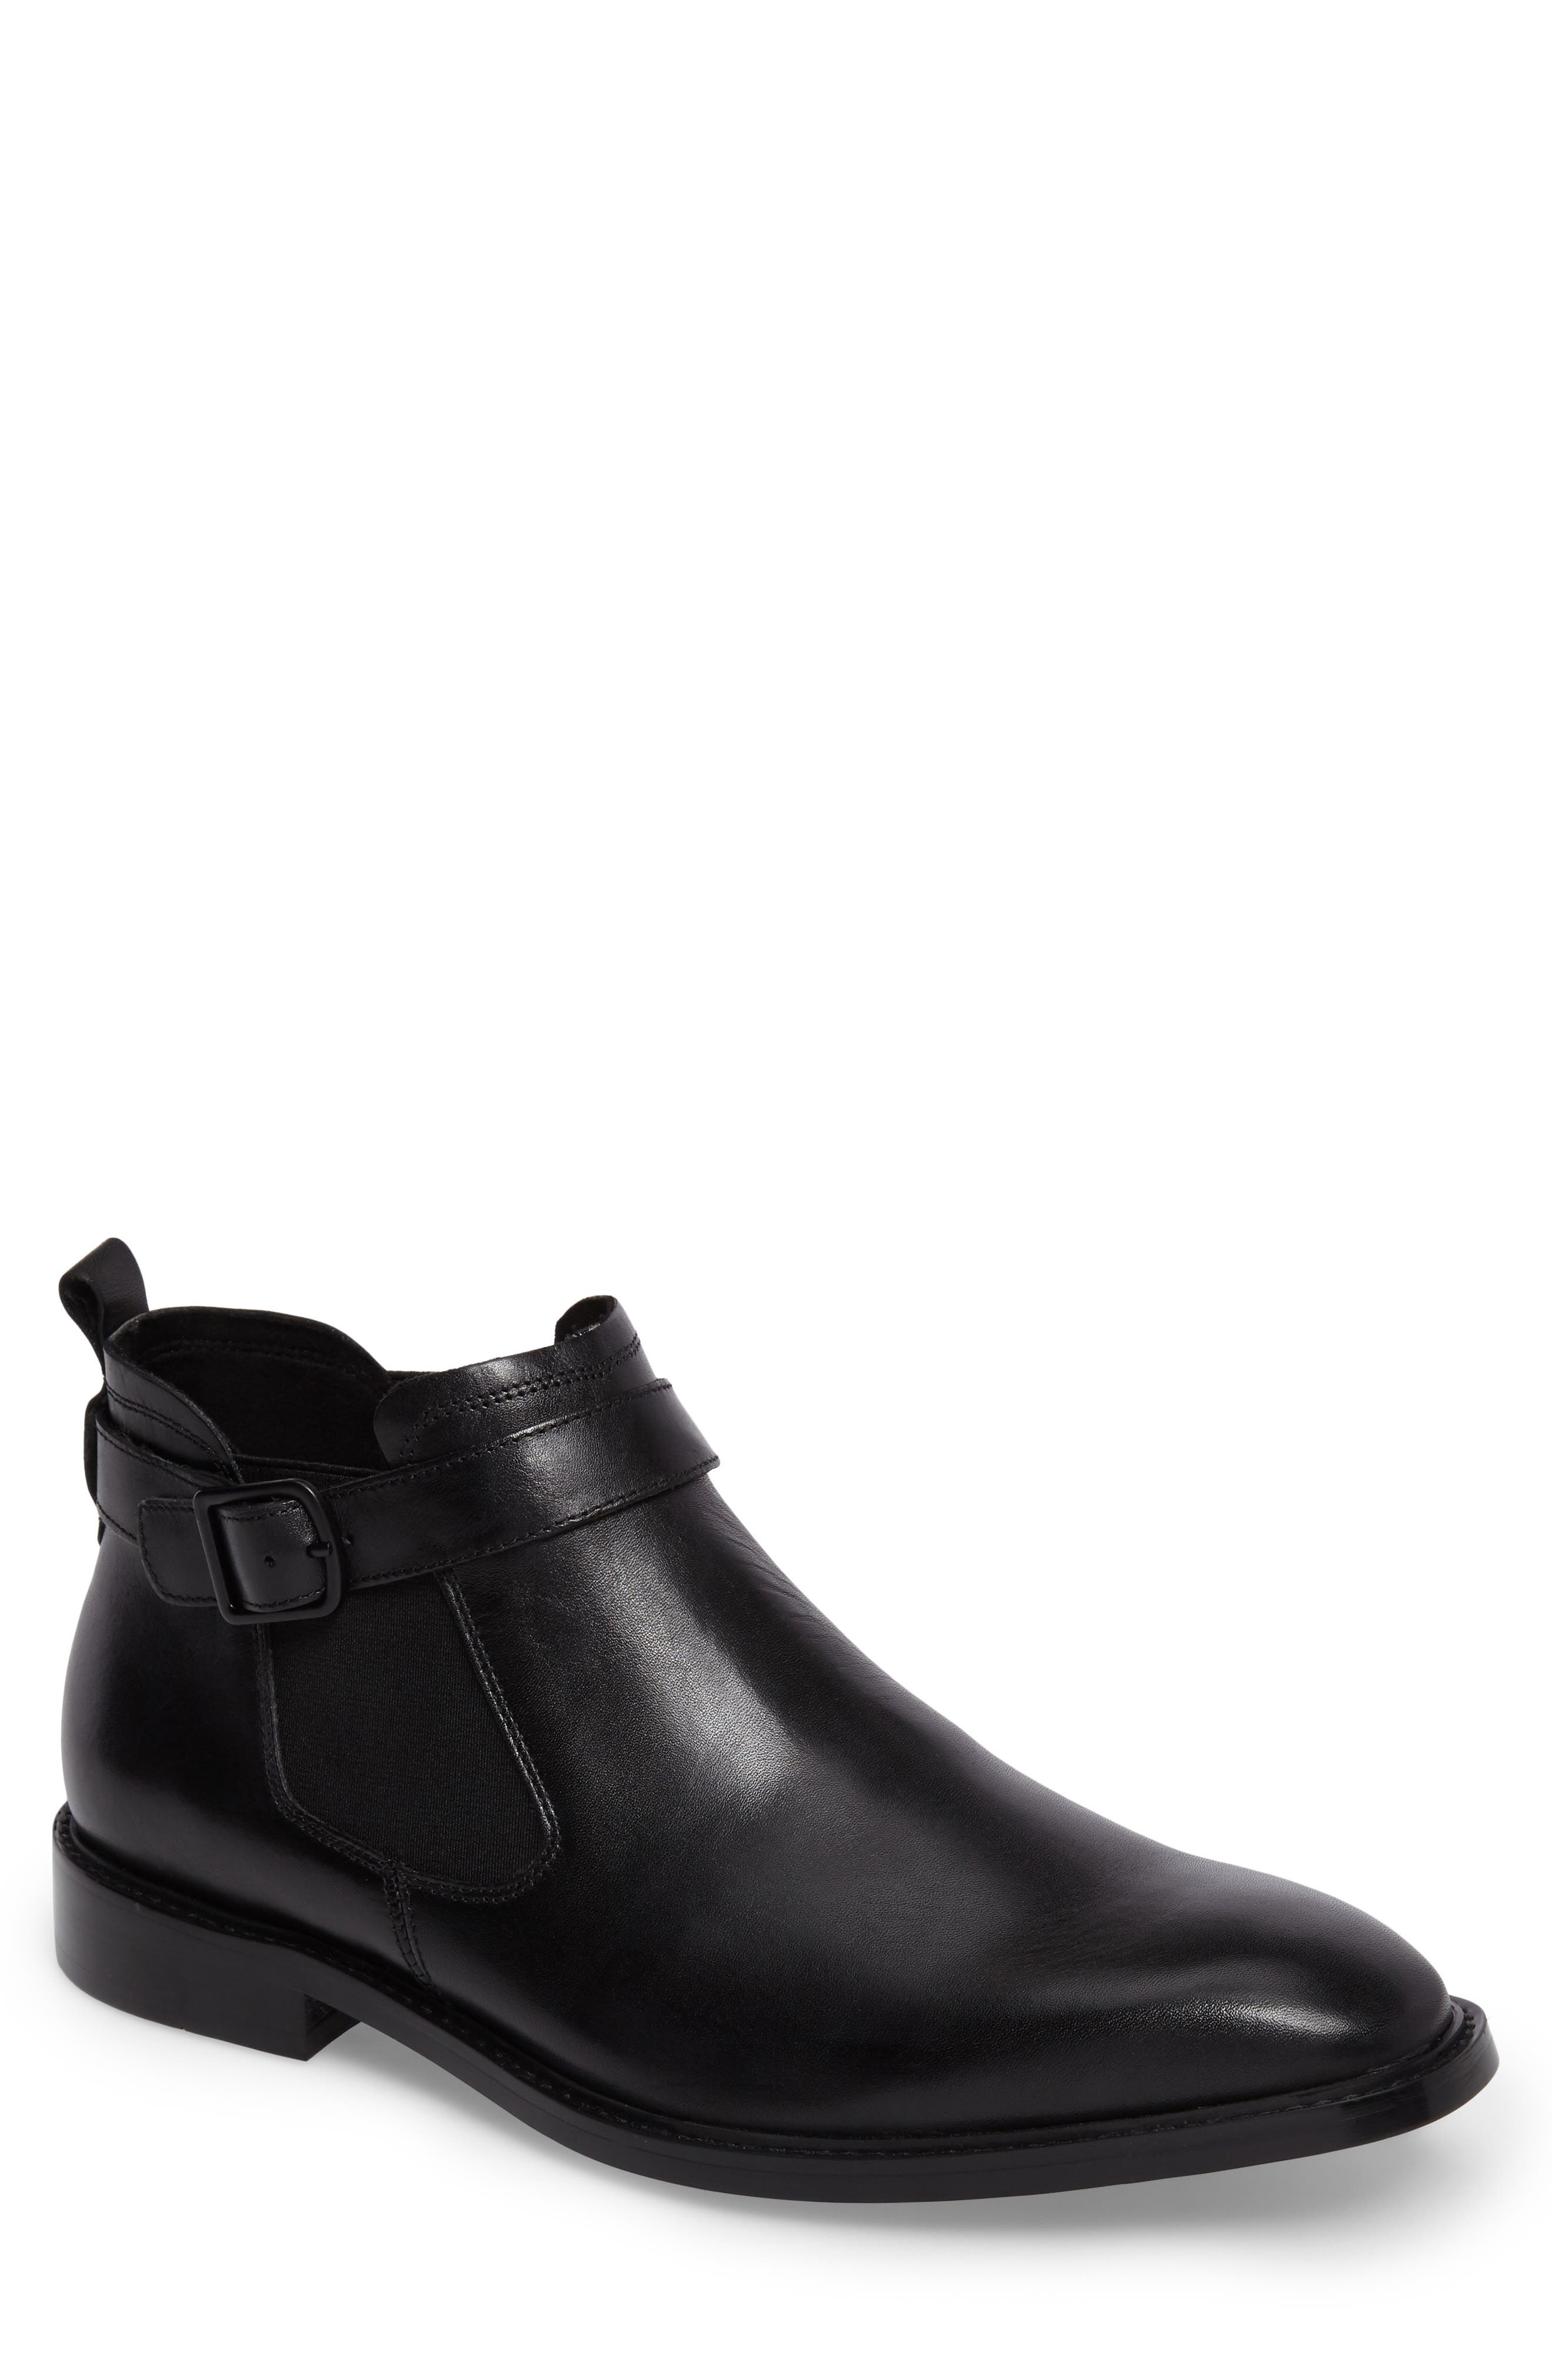 'Sum-Times' Chelsea Boot,                         Main,                         color, 001